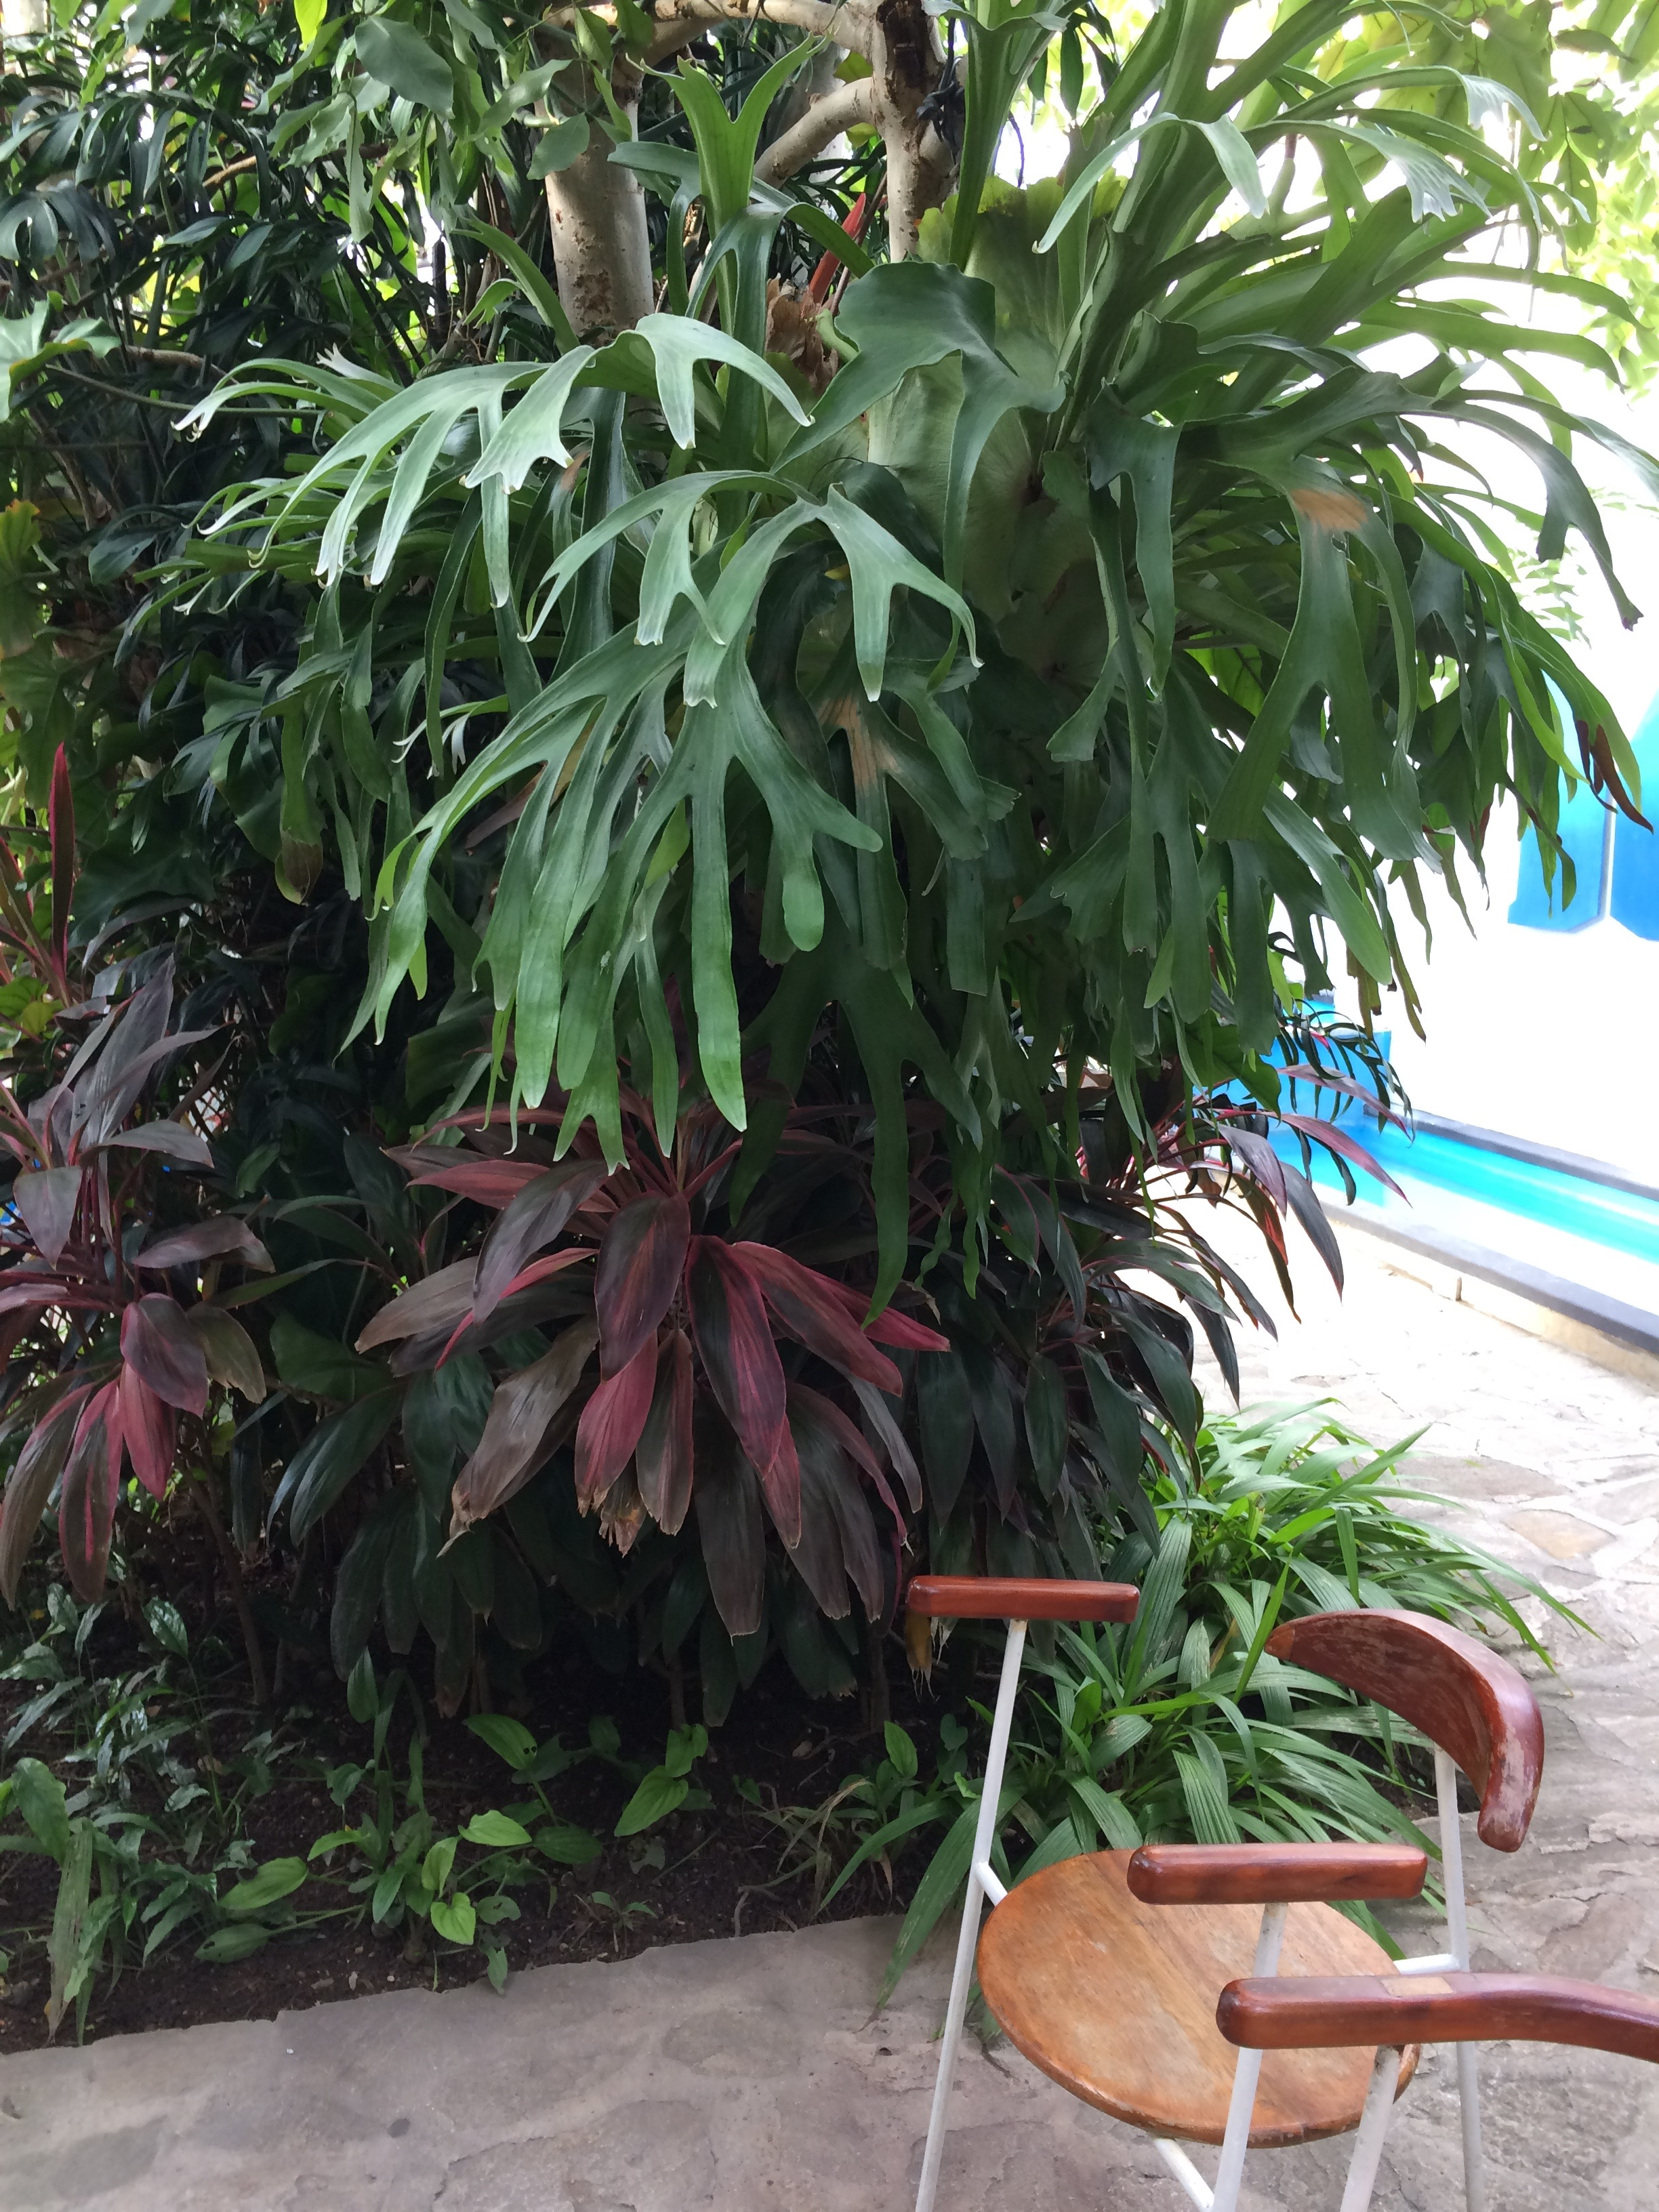 Staghorn ferns obviously like the Cuban climate